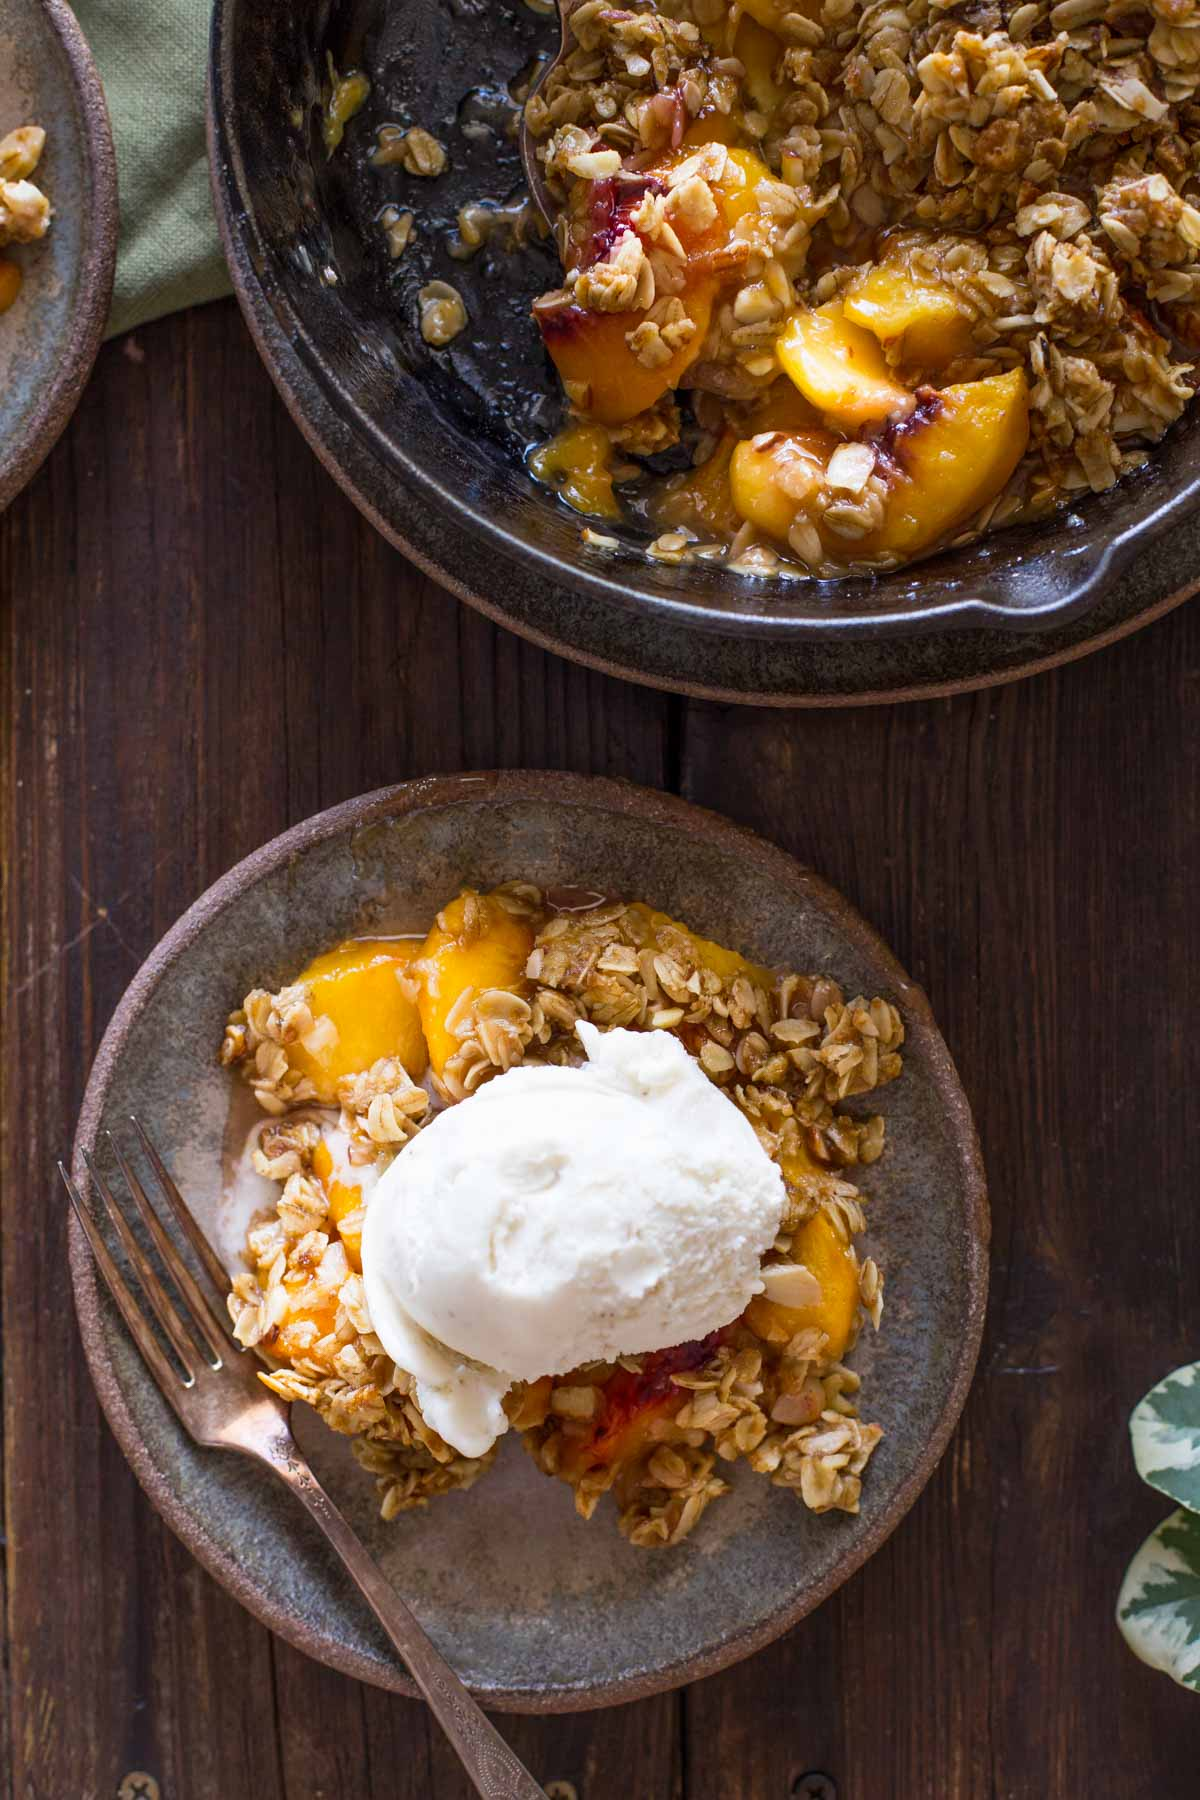 A plate of Easy Skillet Peach Crisp topped with vanilla ice cream, sitting next to the skillet of Peach Crisp.